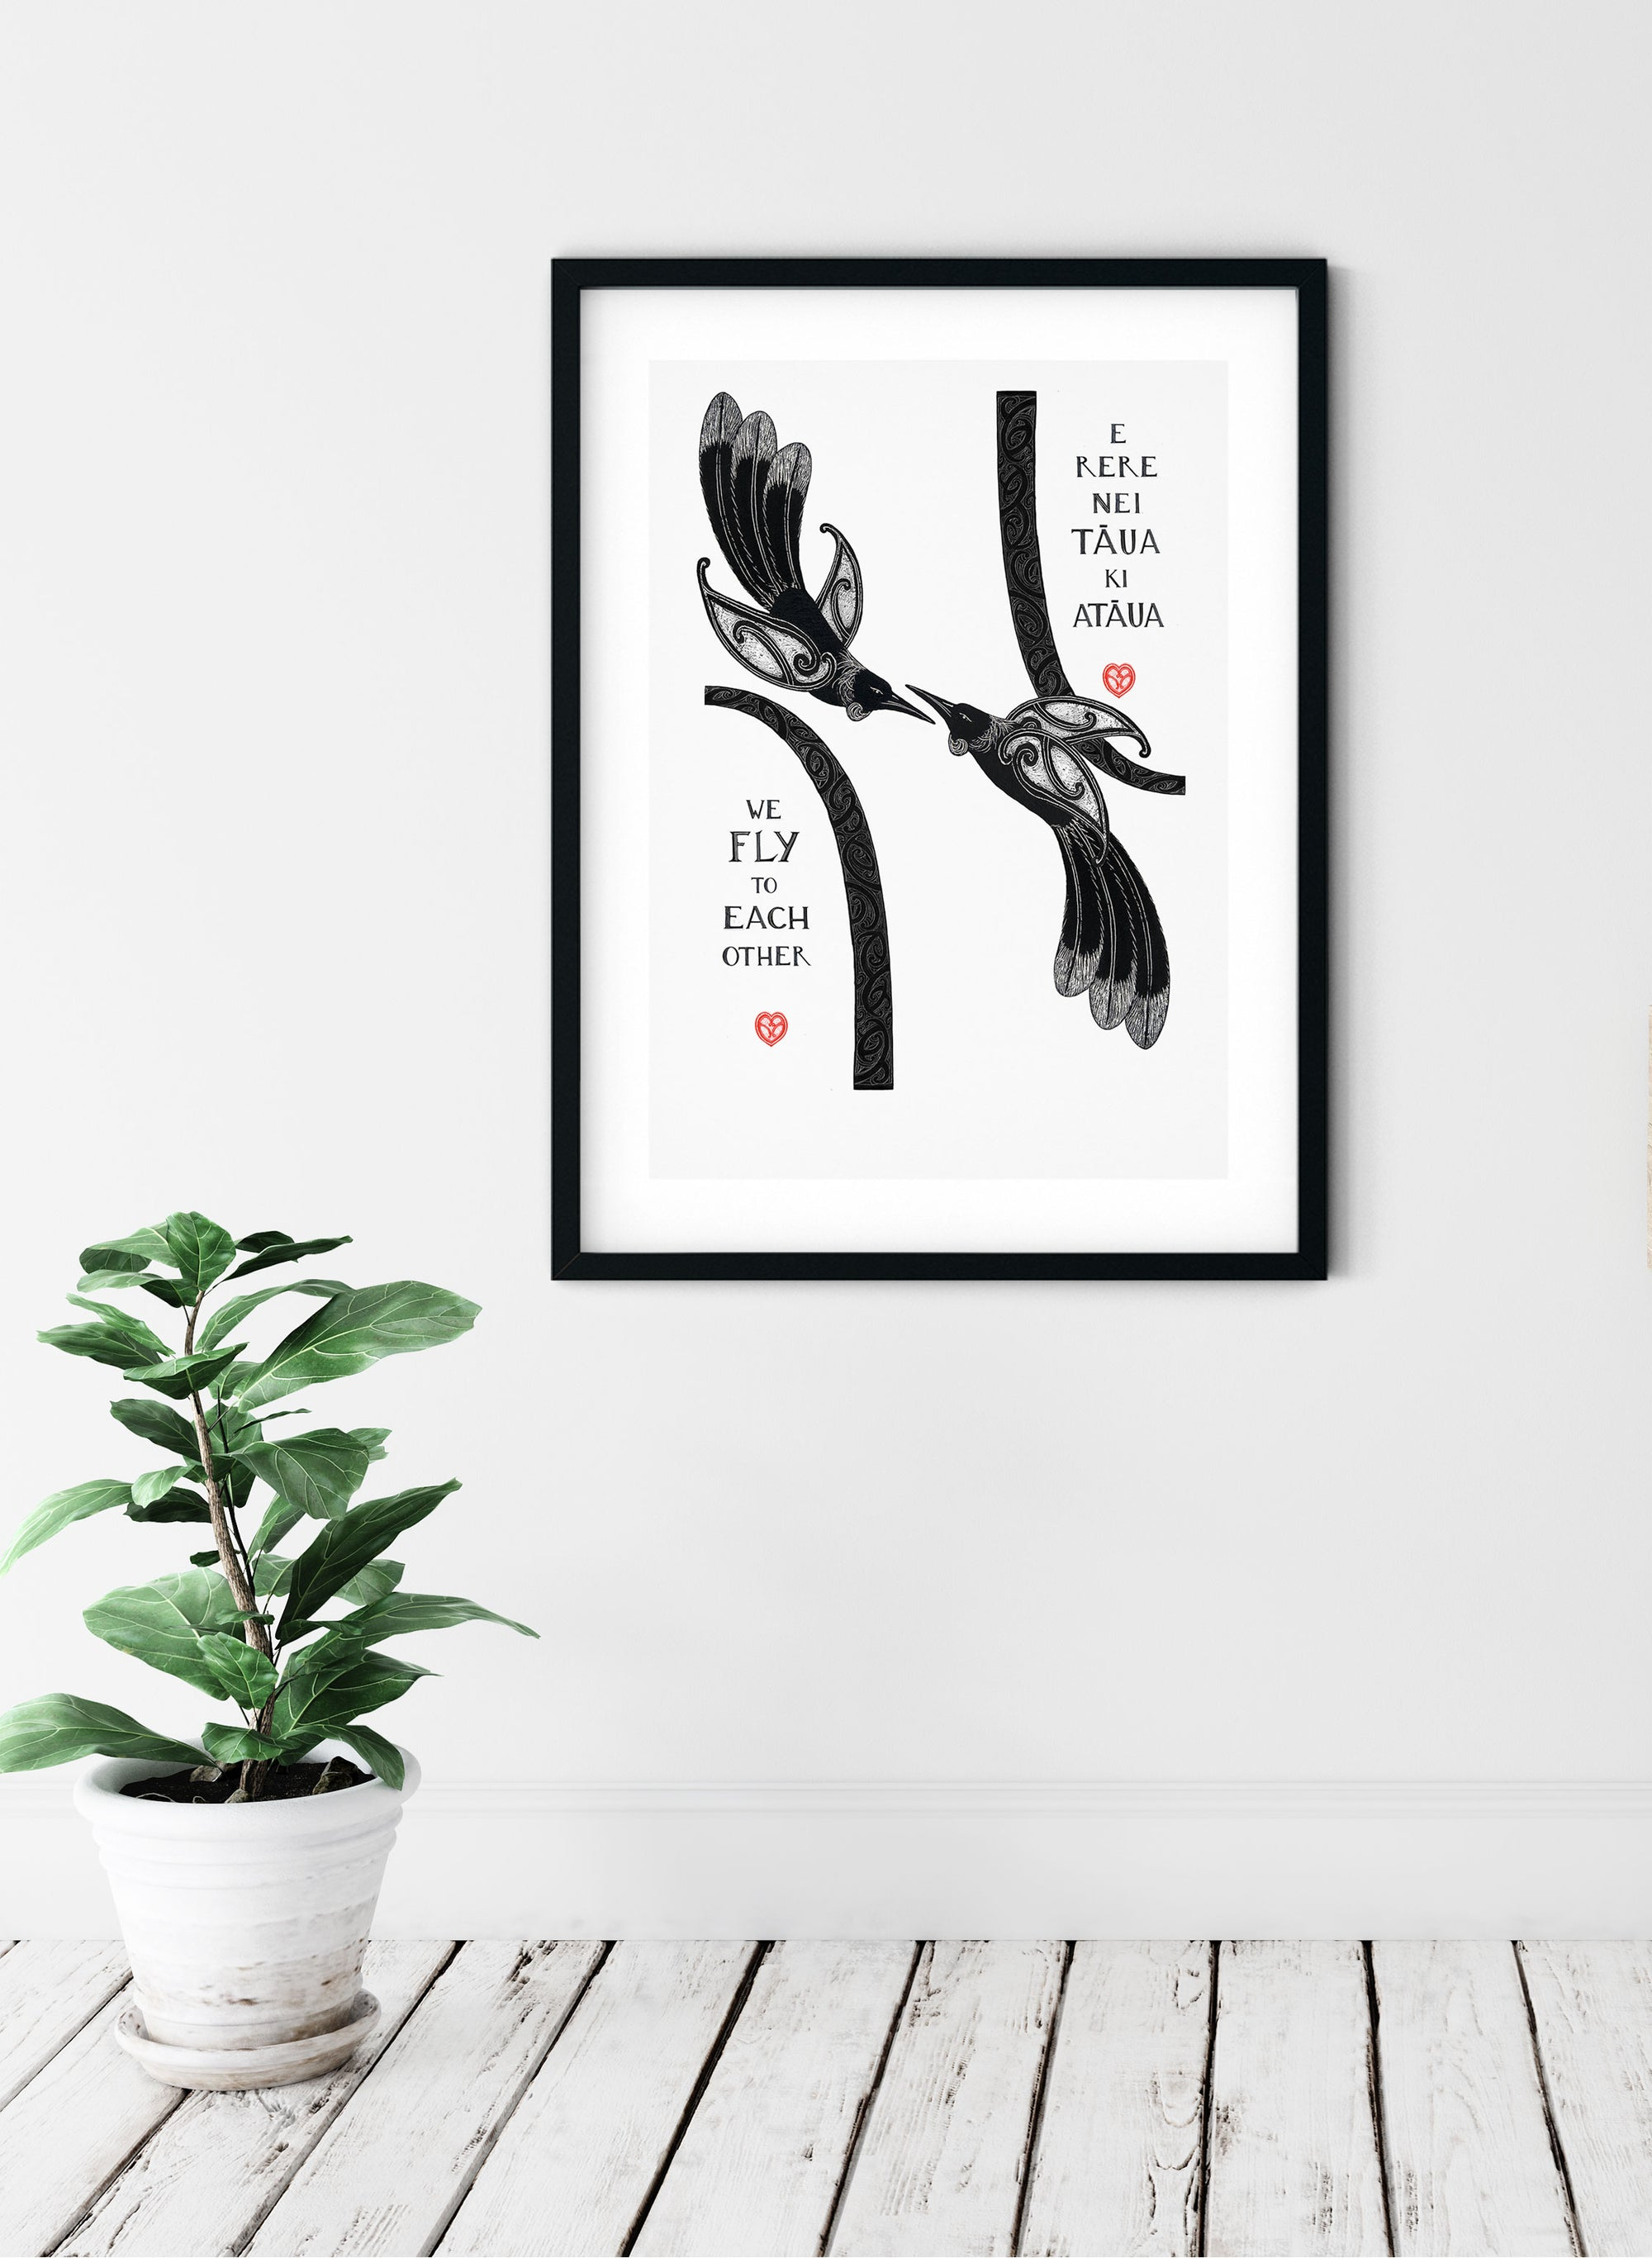 We Fly to Each Other - Giclée Print